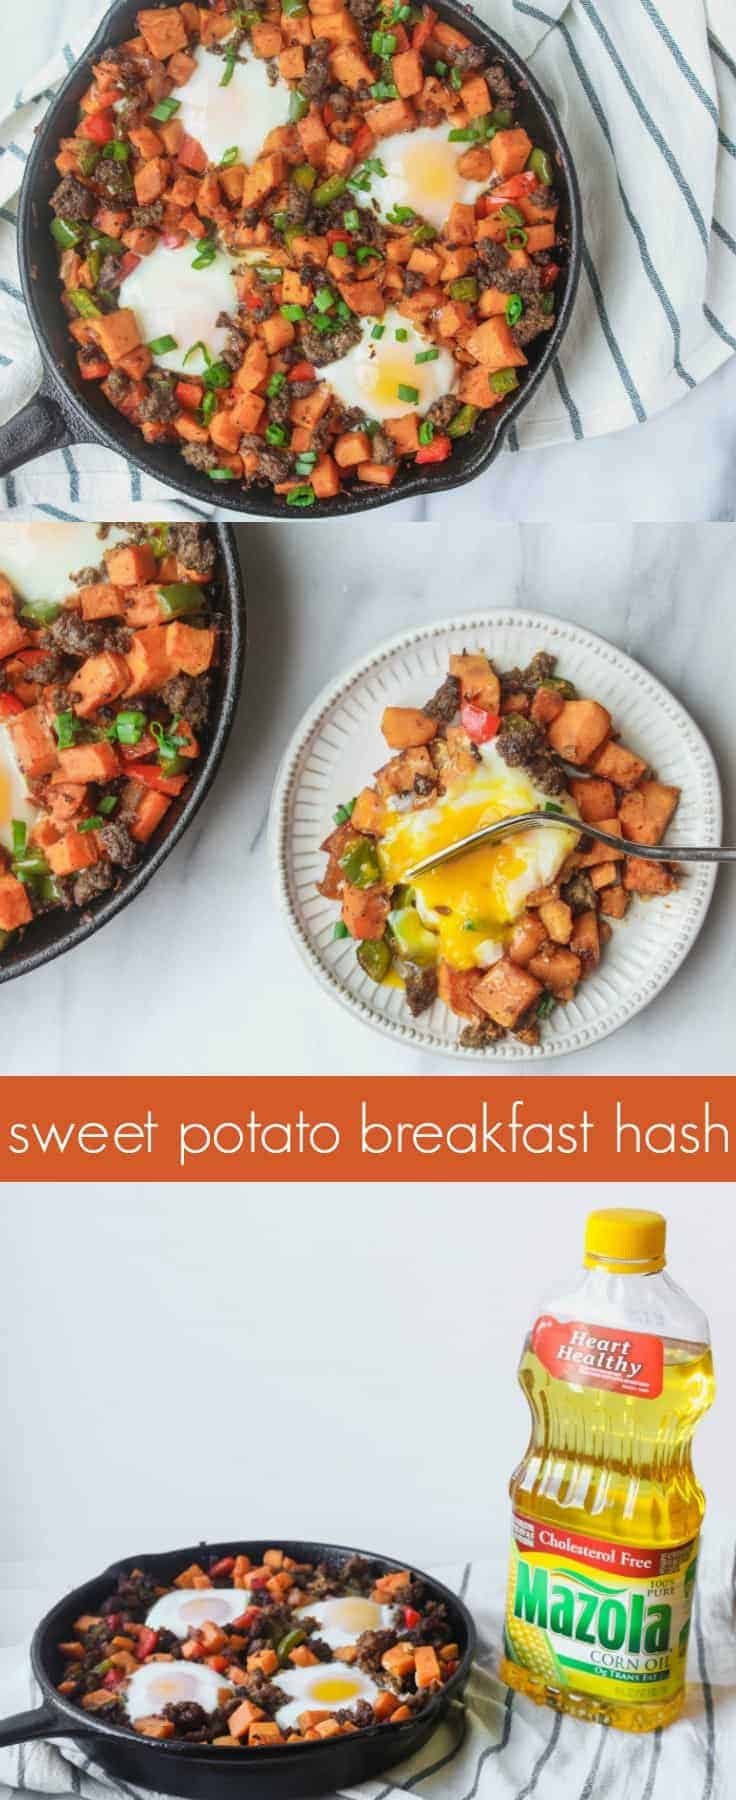 This sweet potato breakfast hash is one of our favorites for easy weekday breakfasts (and even dinners!). Swapping potatoes, sausage and butter for sweet potatoes, turkey sausage, and Mazola® Corn Oil instead of another oil or butter, makes this easy recipe healthier and lighter!